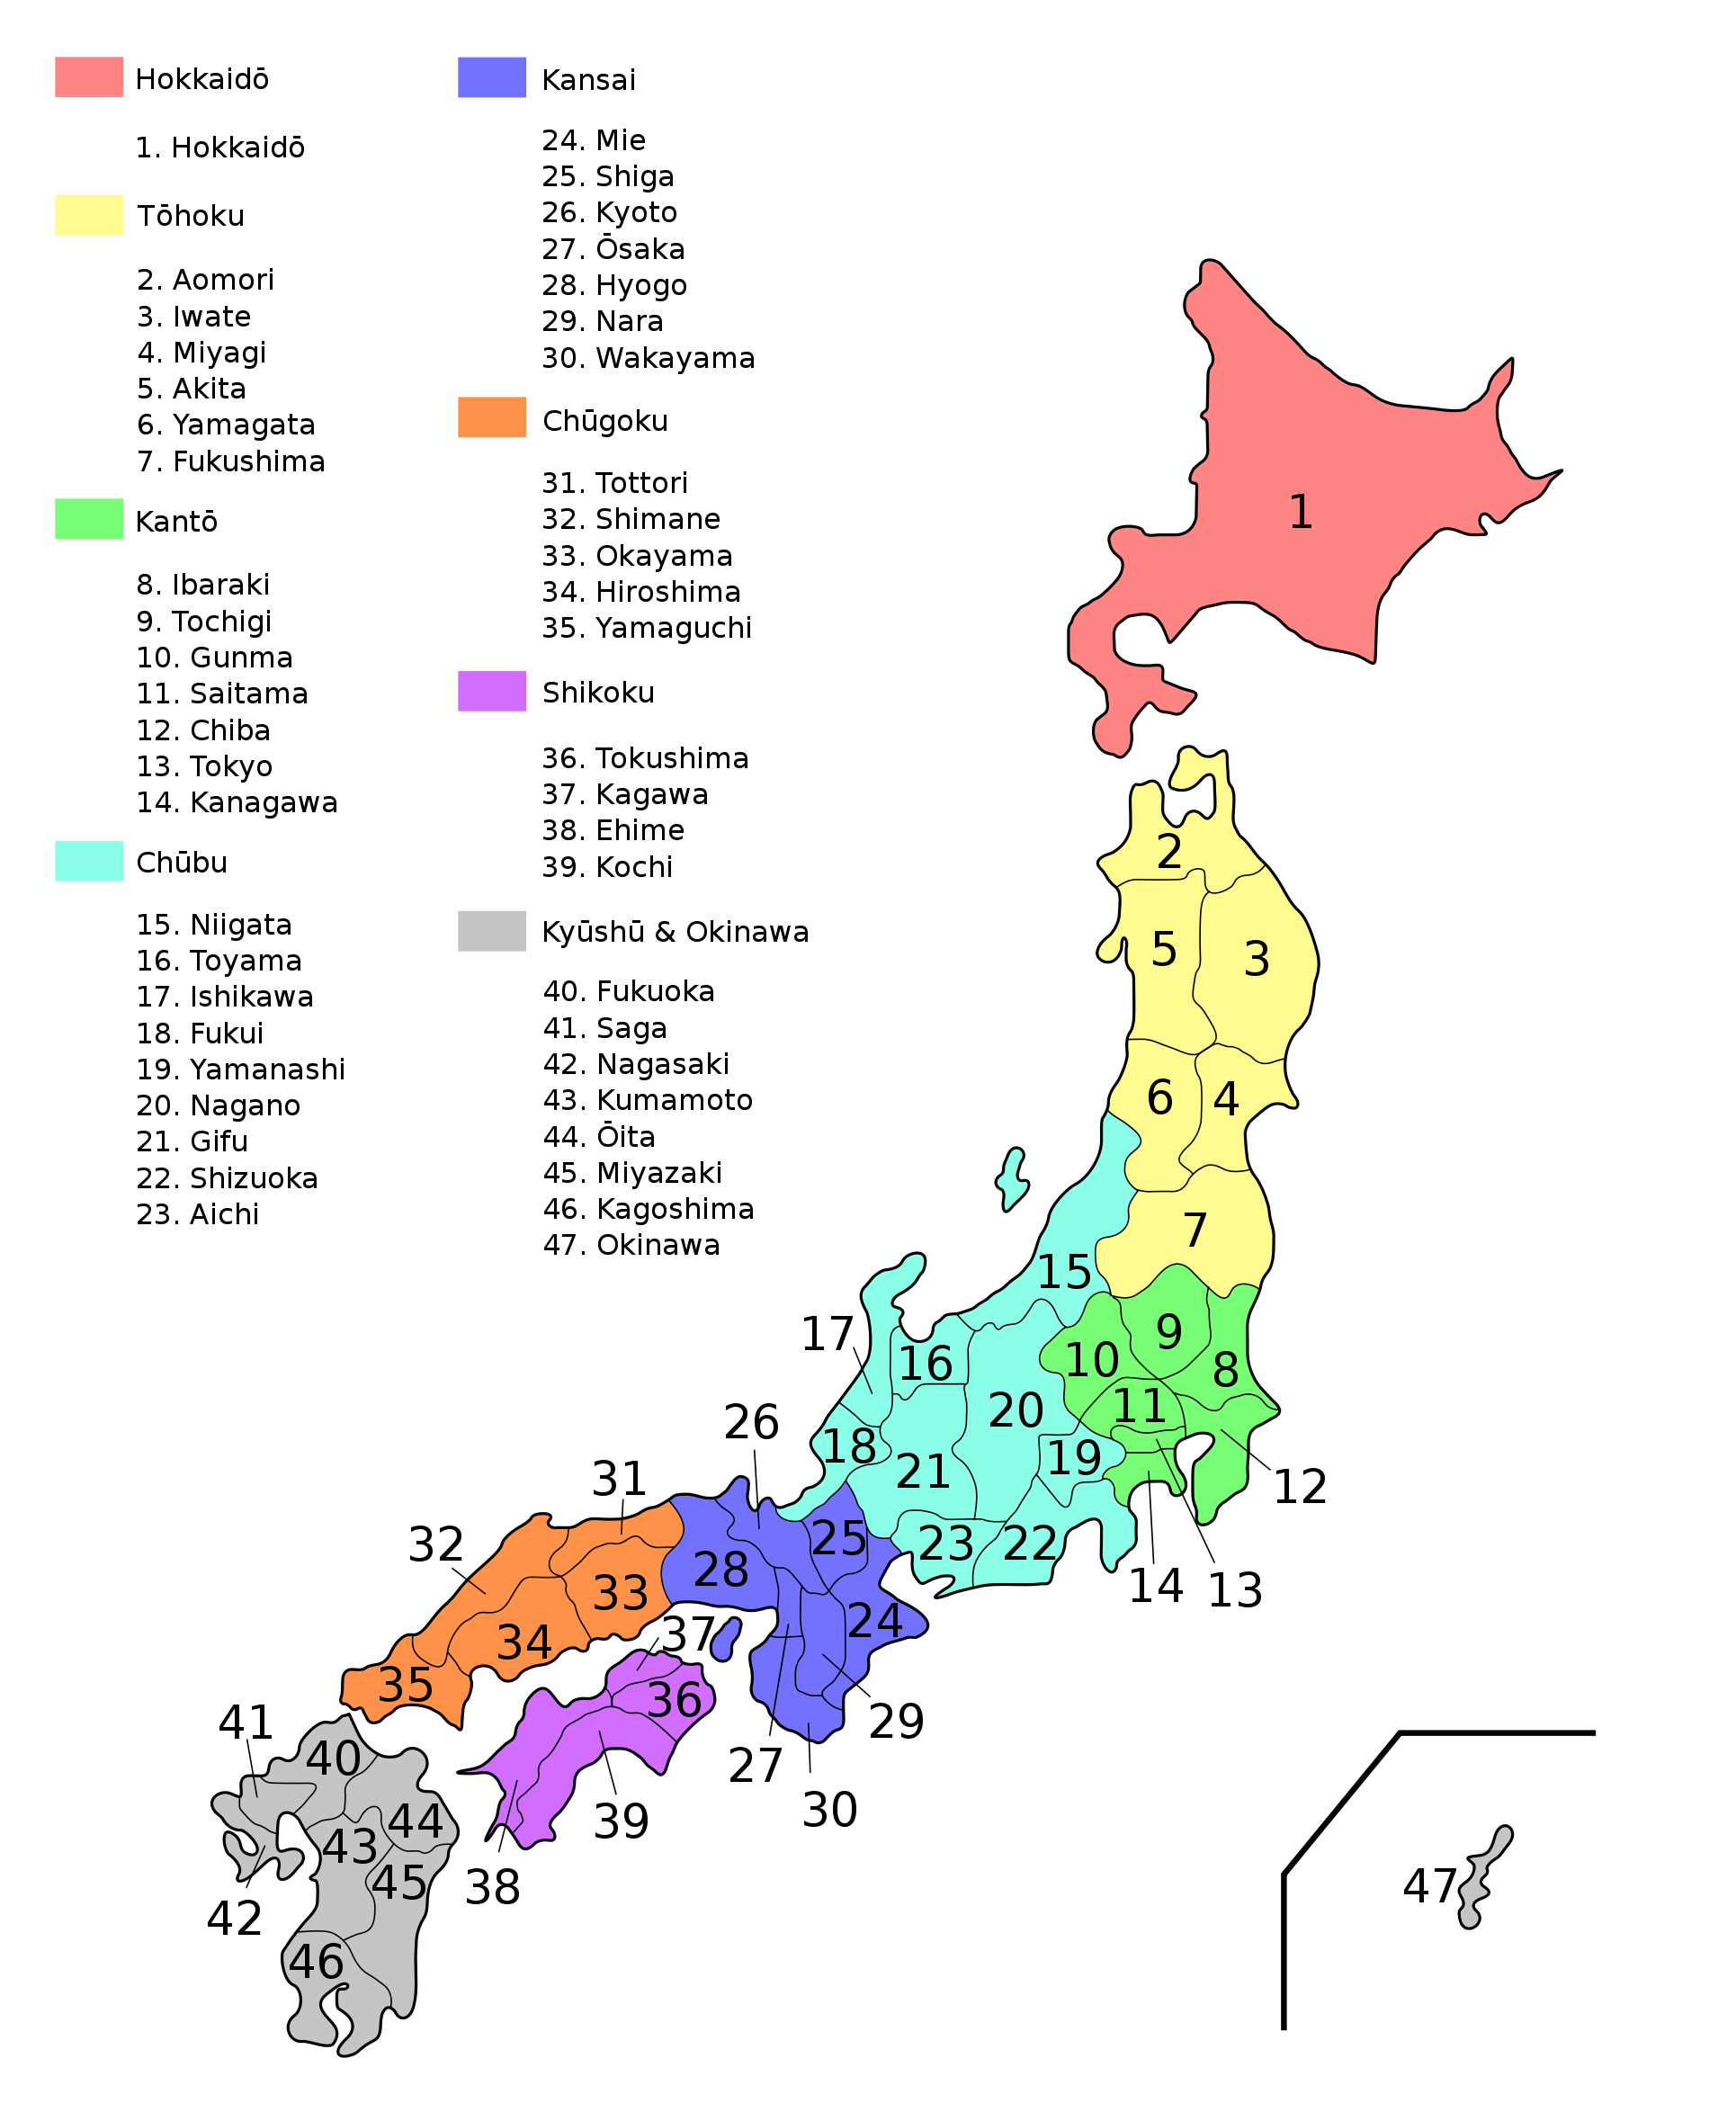 Regions_and_Prefectures_of_Japan_No_Title